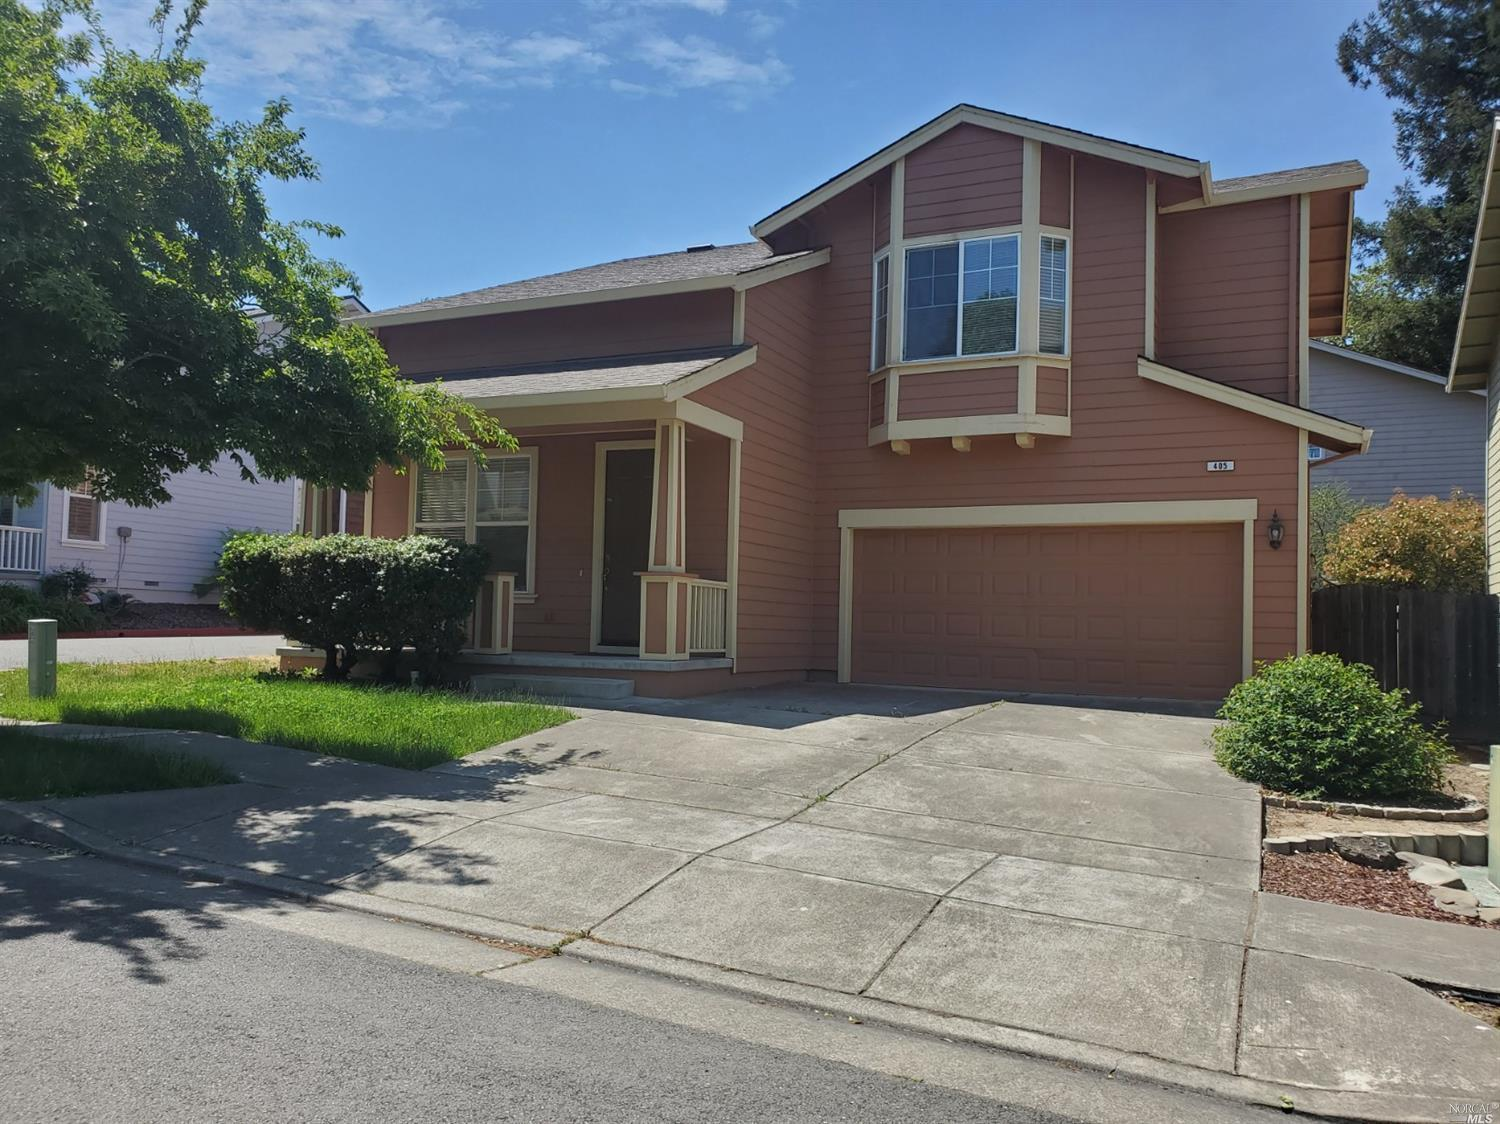 Come see this beautiful four bedroom home in Cotati.  Walk in to a large living room with formal dining space and chandelier lighting.  Kitchen comes with tiled countertops, gas stove, dishwasher and refrigerator.  Kitchen also features a breakfast nook area.  Family room has electric fireplace and glass slider that leads to backyard deck.  Upstairs is an amazing space with a loft sitting area and all four bedrooms.  Master bedroom comes with french doors, walk-in closet and private bathroom with dual sinks , separate tub and shower area.  Laundry room is located upstairs next to all bedrooms.  Backyard comes with wood deck, side cement patio and grass area.  Two car garage.  Landscaping not included.  No A/C.  Small dog possible 25lbs limit with additional deposit.